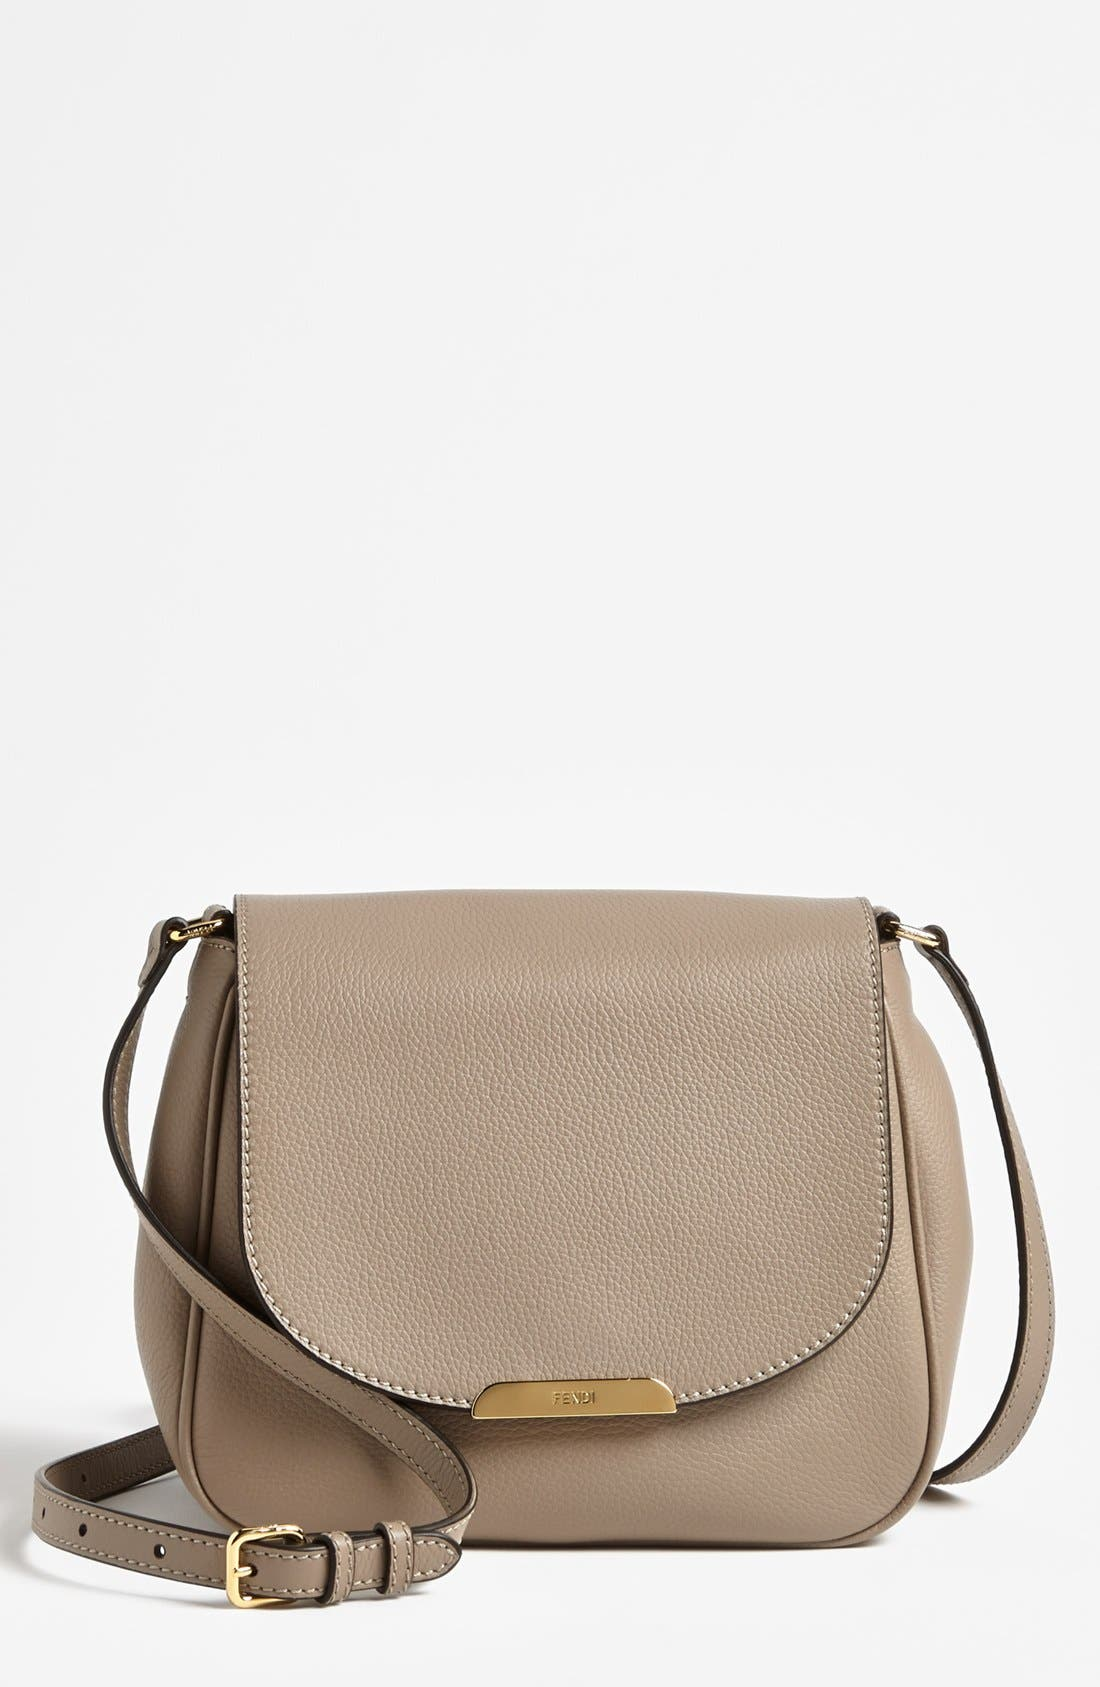 Alternate Image 1 Selected - Fendi Leather Crossbody Bag